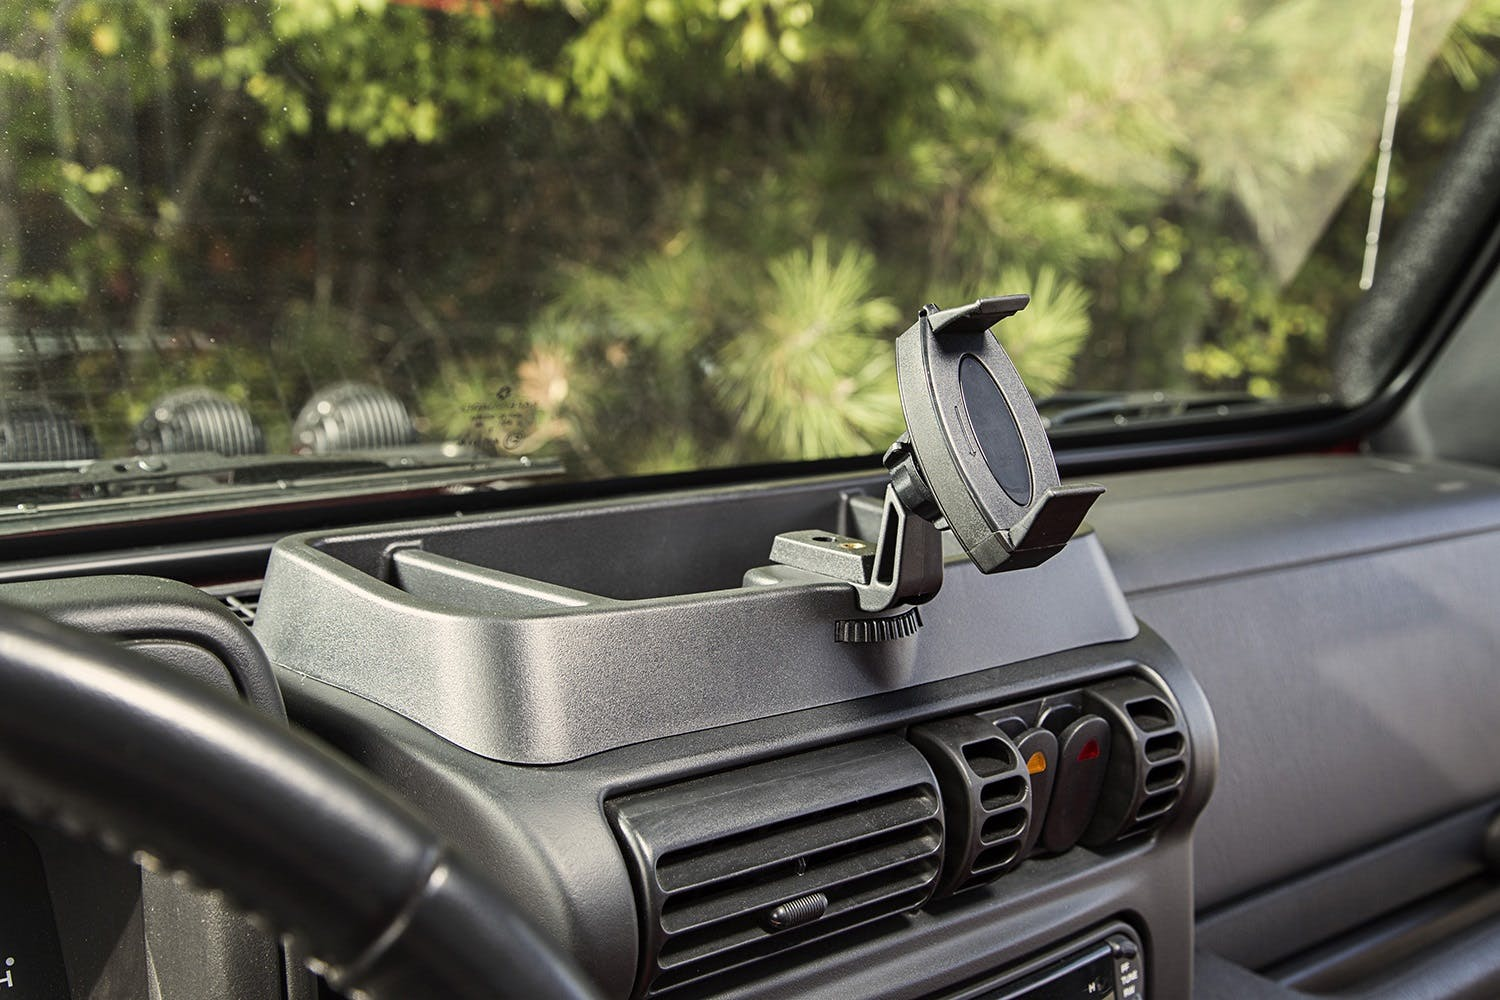 Go Pro Fits Jeep Wrangler TJ 97-06 13551.18 Rugged Dash Multi-Mount for Phone